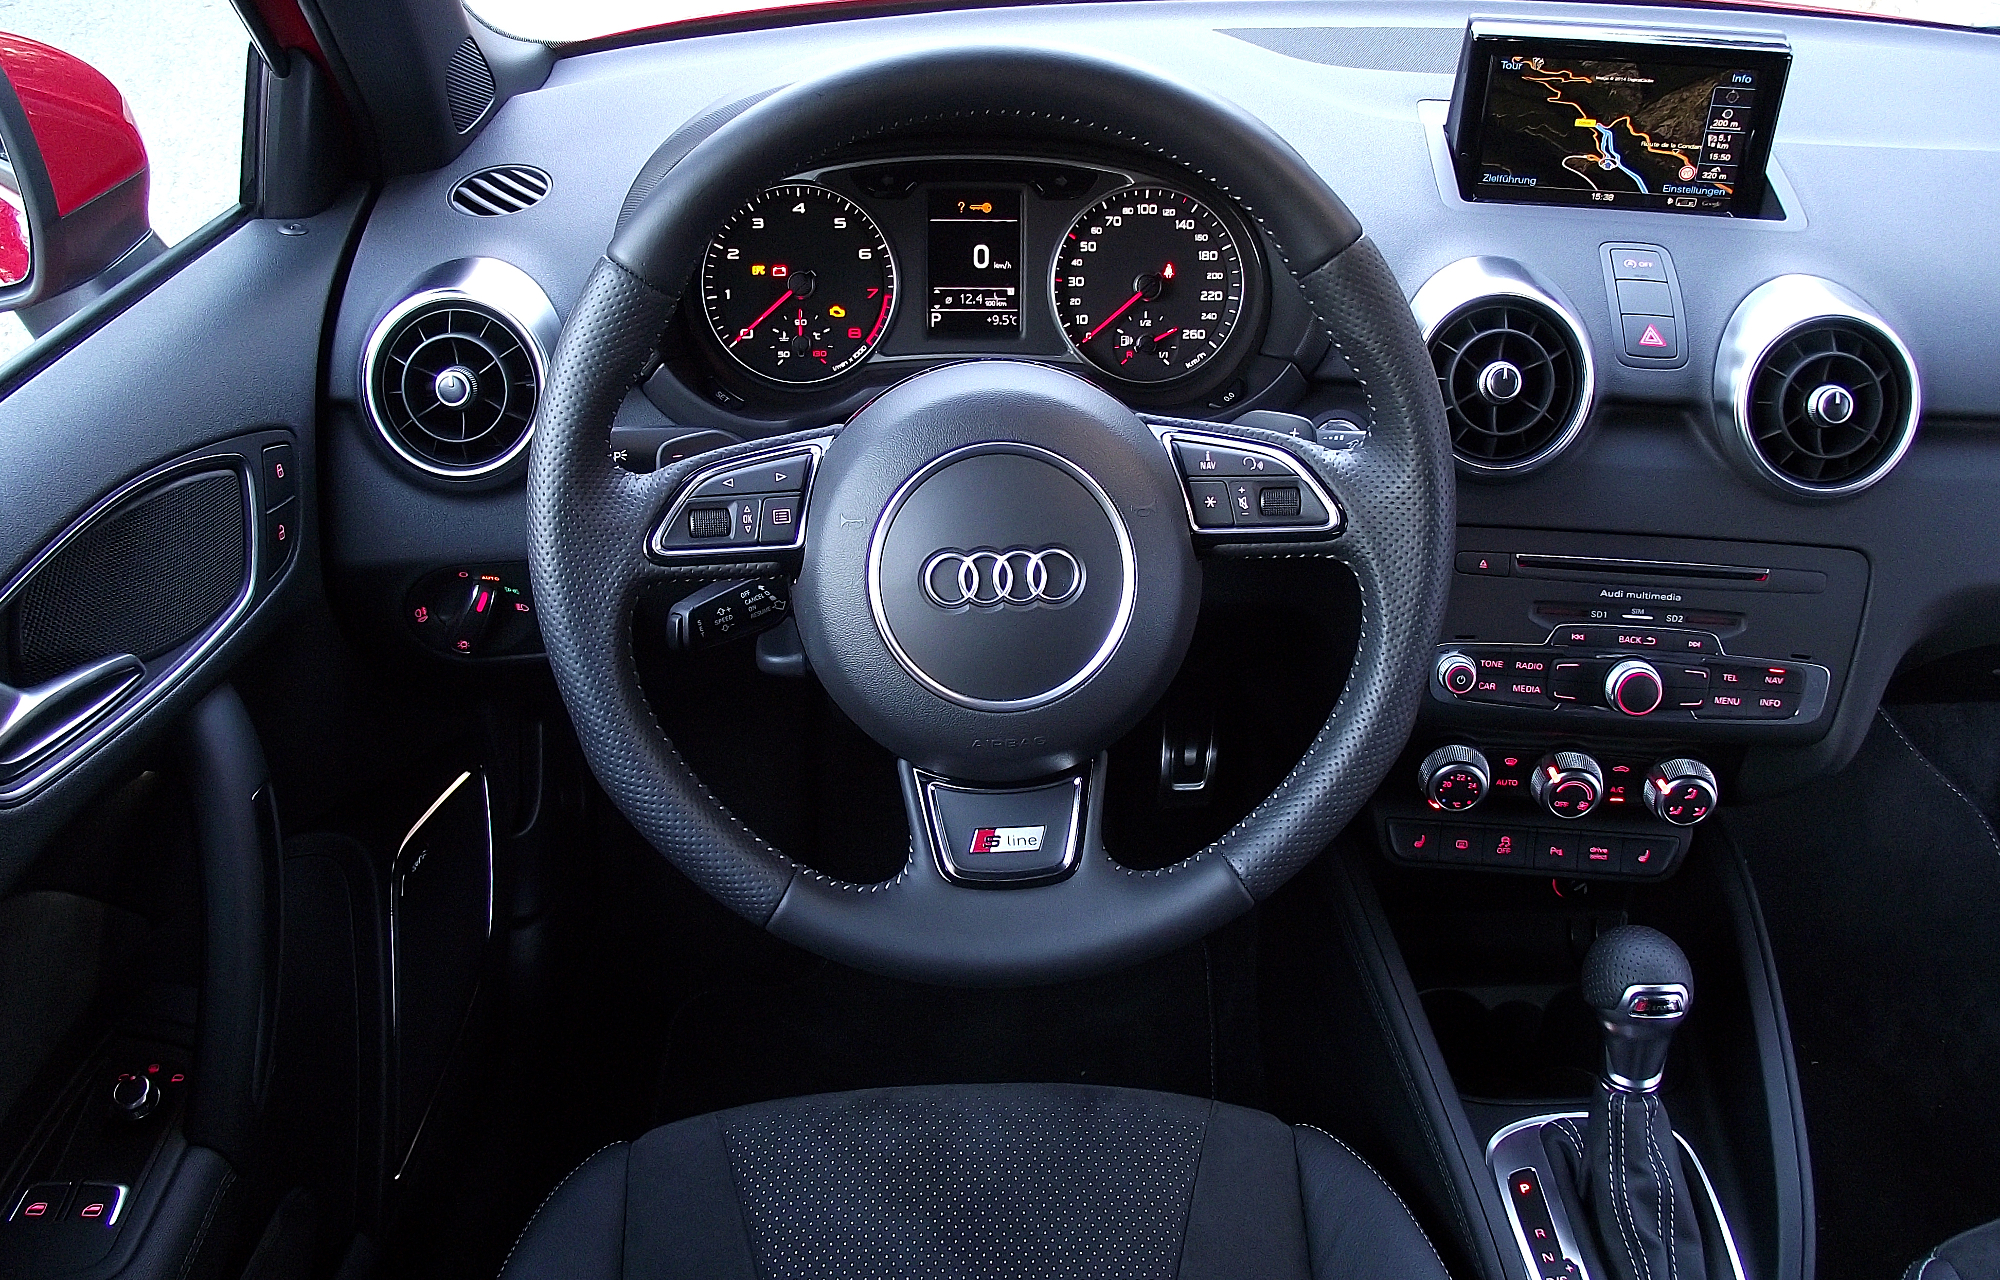 file 2015 facelift audi a1 typ 8x 1 8 tfsi s tronic 141 kw cockpit interieur. Black Bedroom Furniture Sets. Home Design Ideas